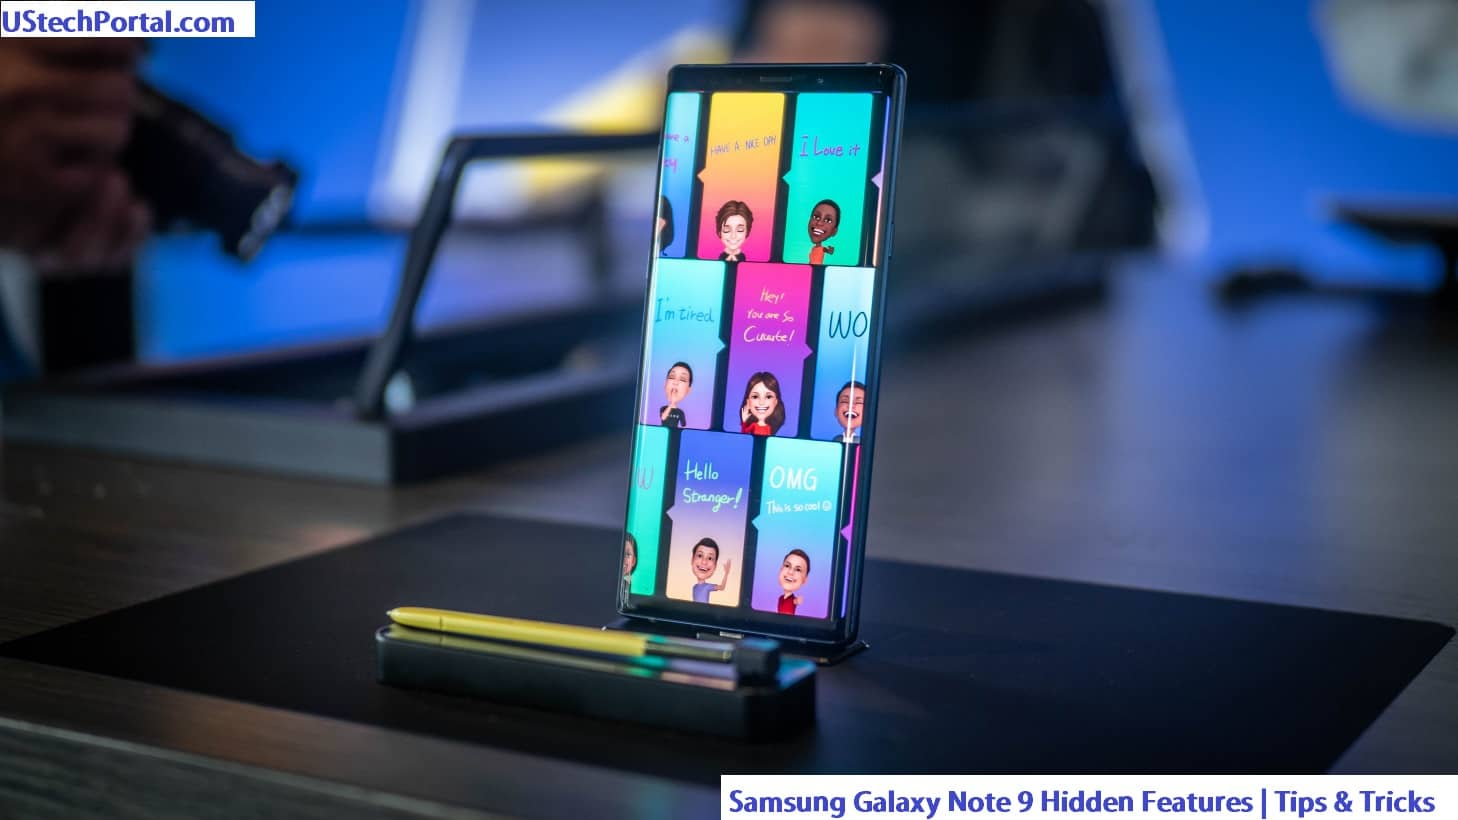 Samsung-Galaxy-Note-9-hidden-features-tips-tricks